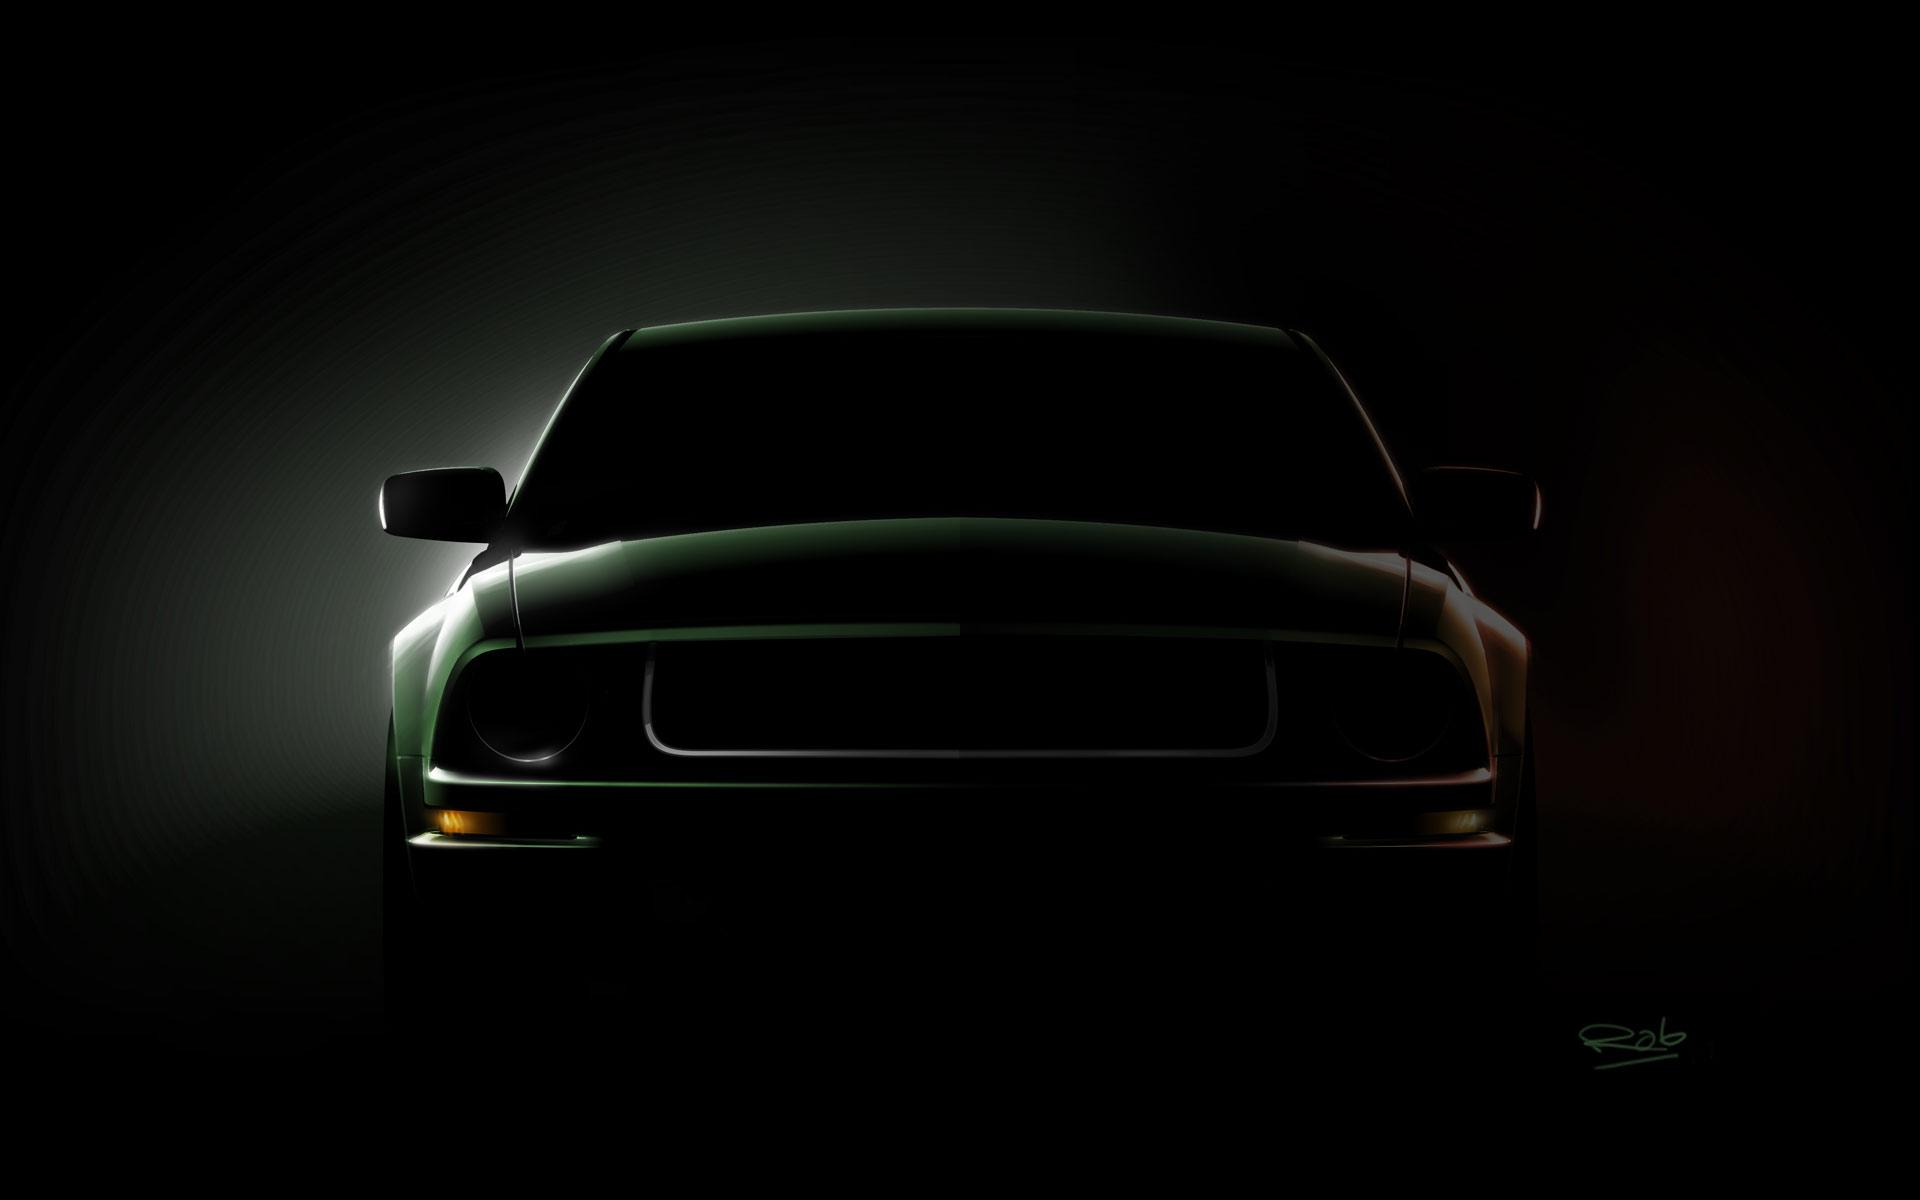 Wallpaper ford mustang animaatjes 47 Wallpaper 1920x1200